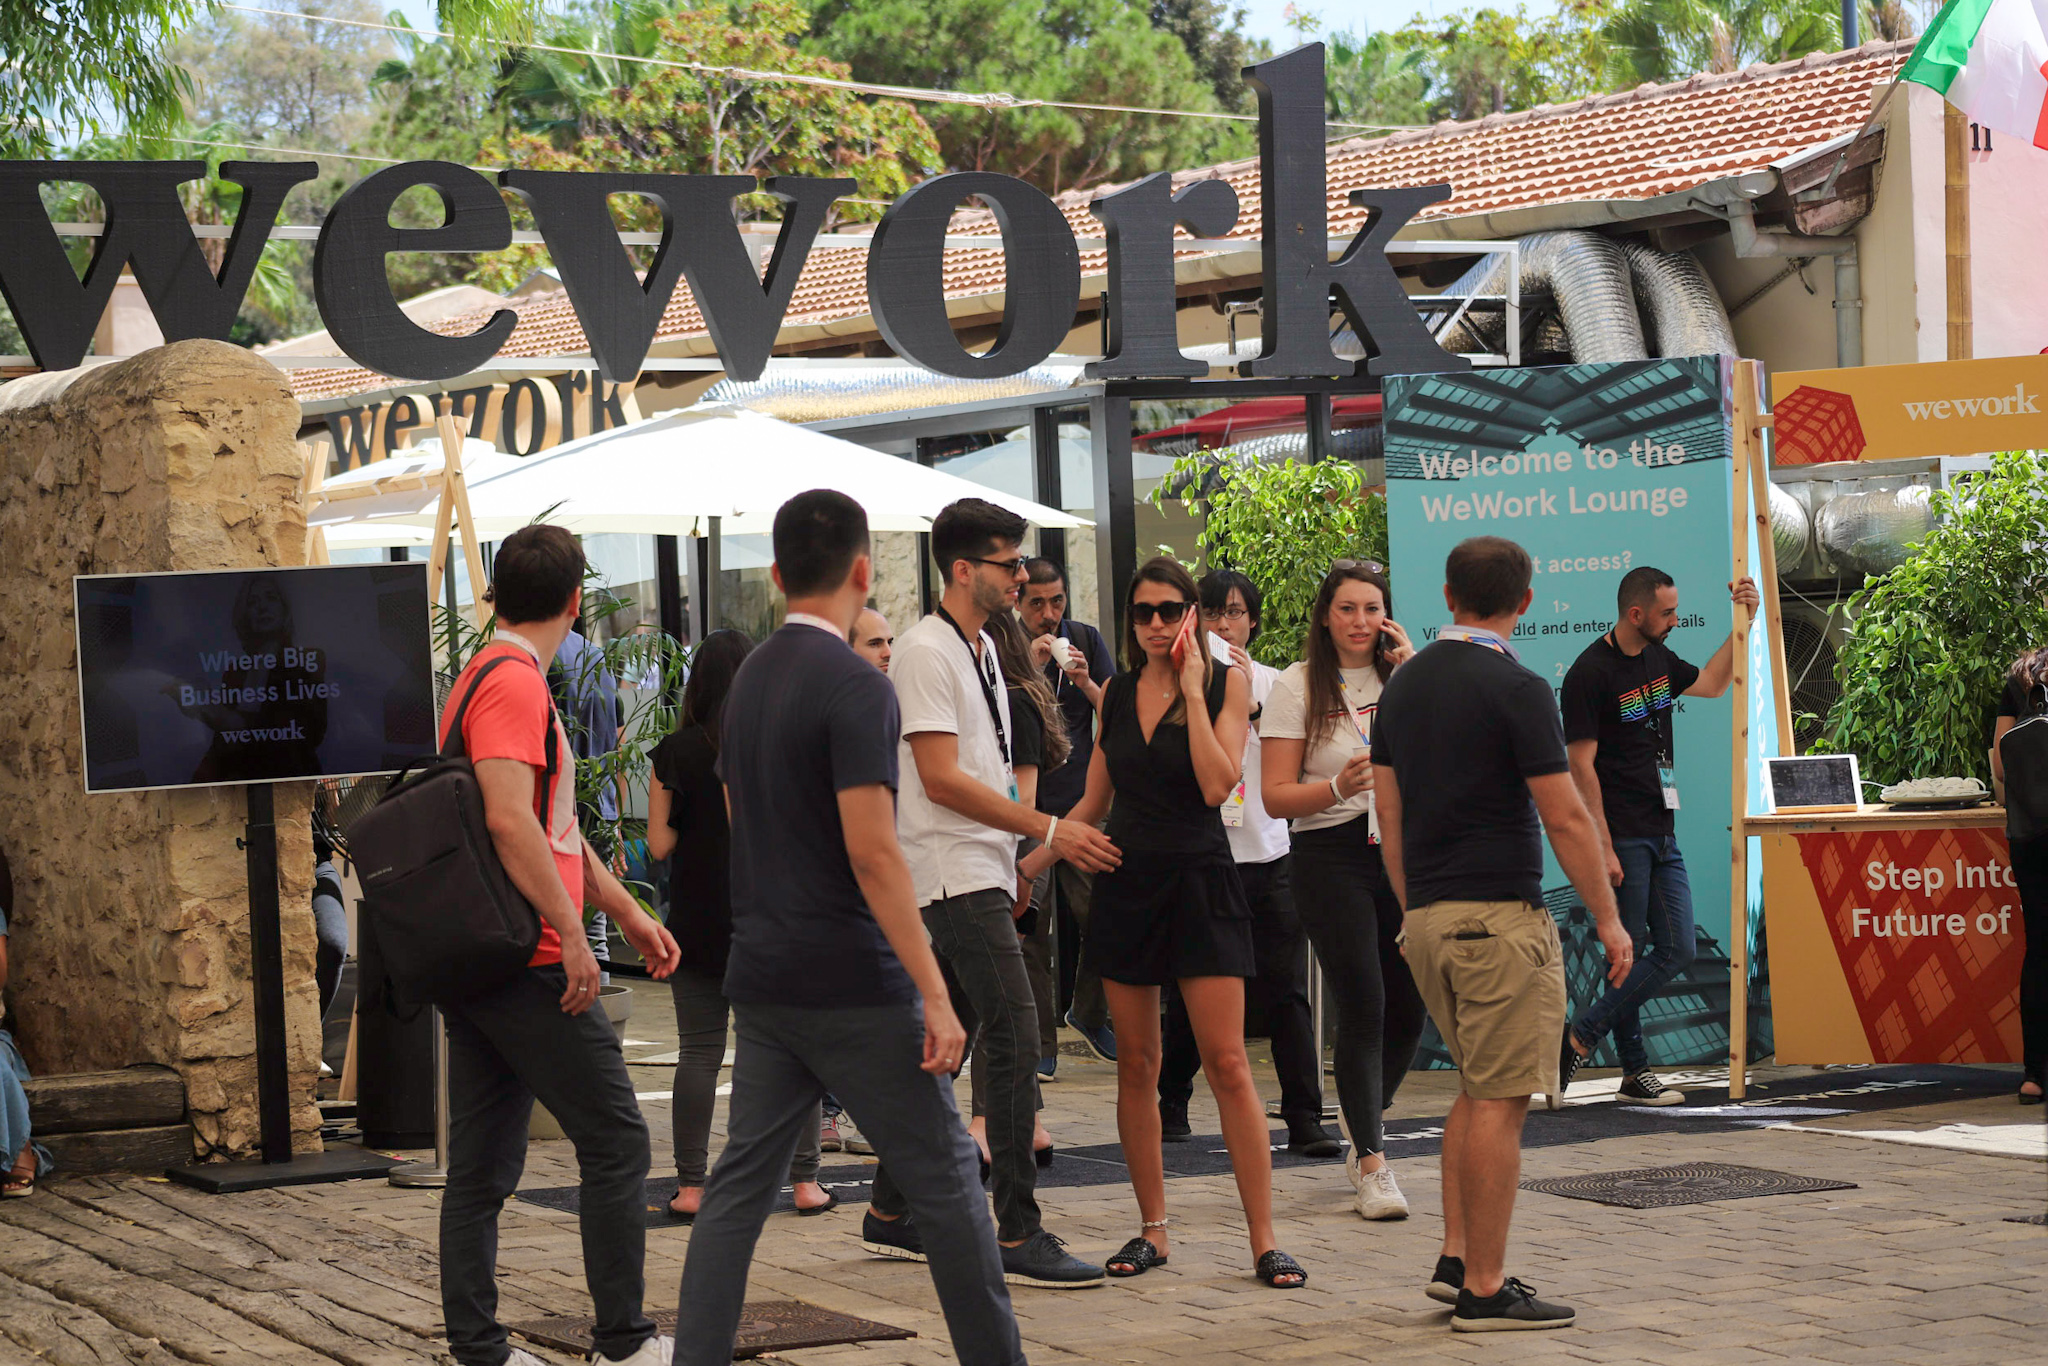 Market Analysis: Is WeWork's Business Model Sustainable?